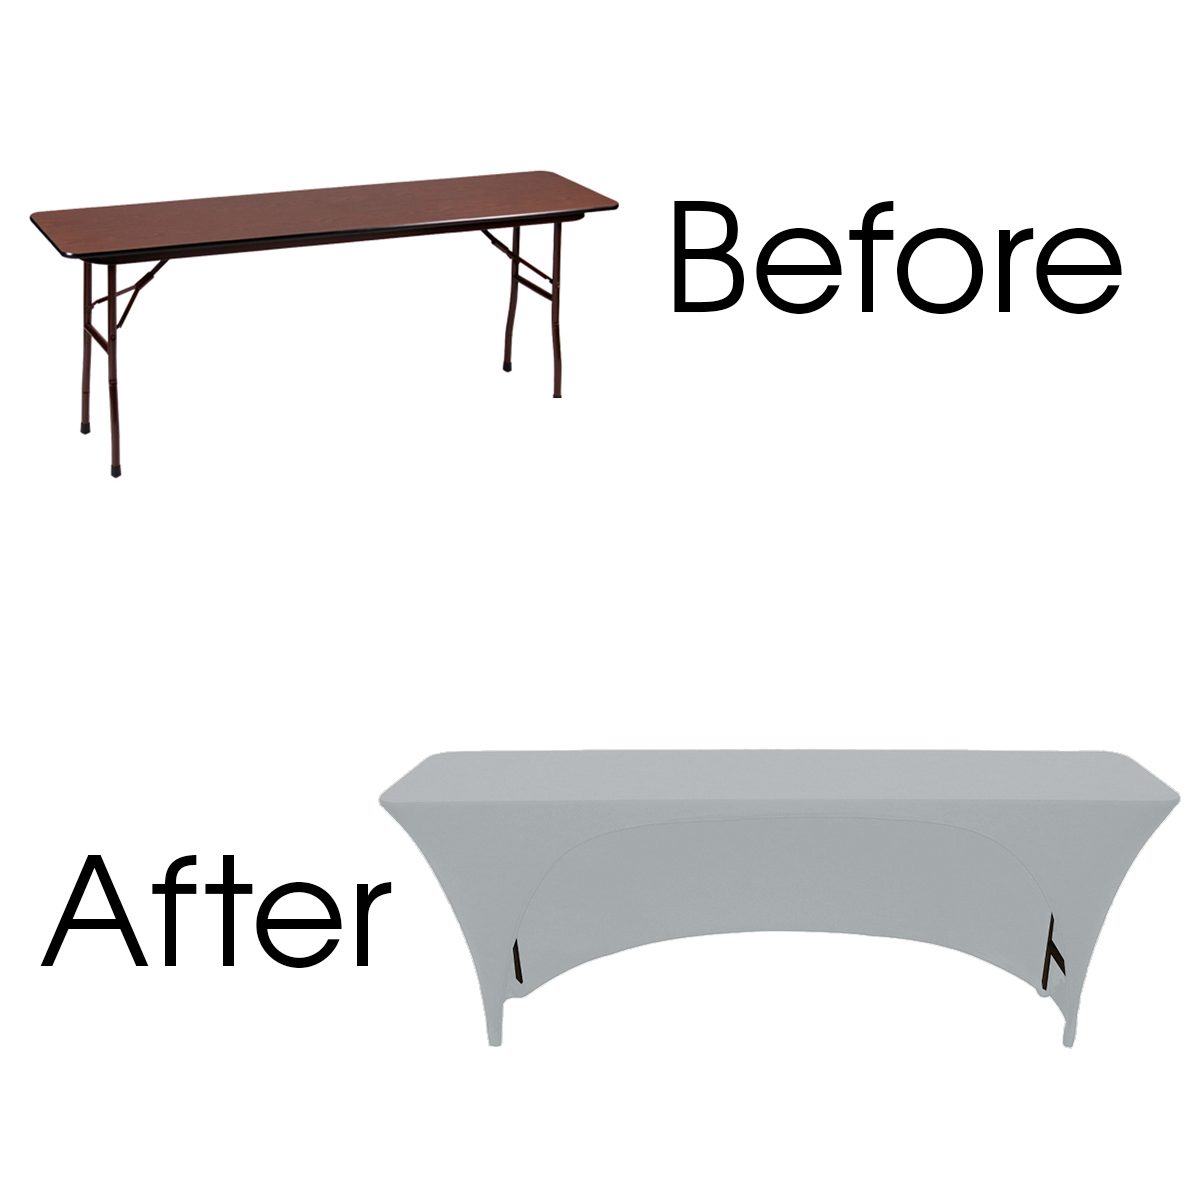 stretch-spandex-6ft-18-inches-open-back-rectangular-table-covers-Silver-before-after.jpg